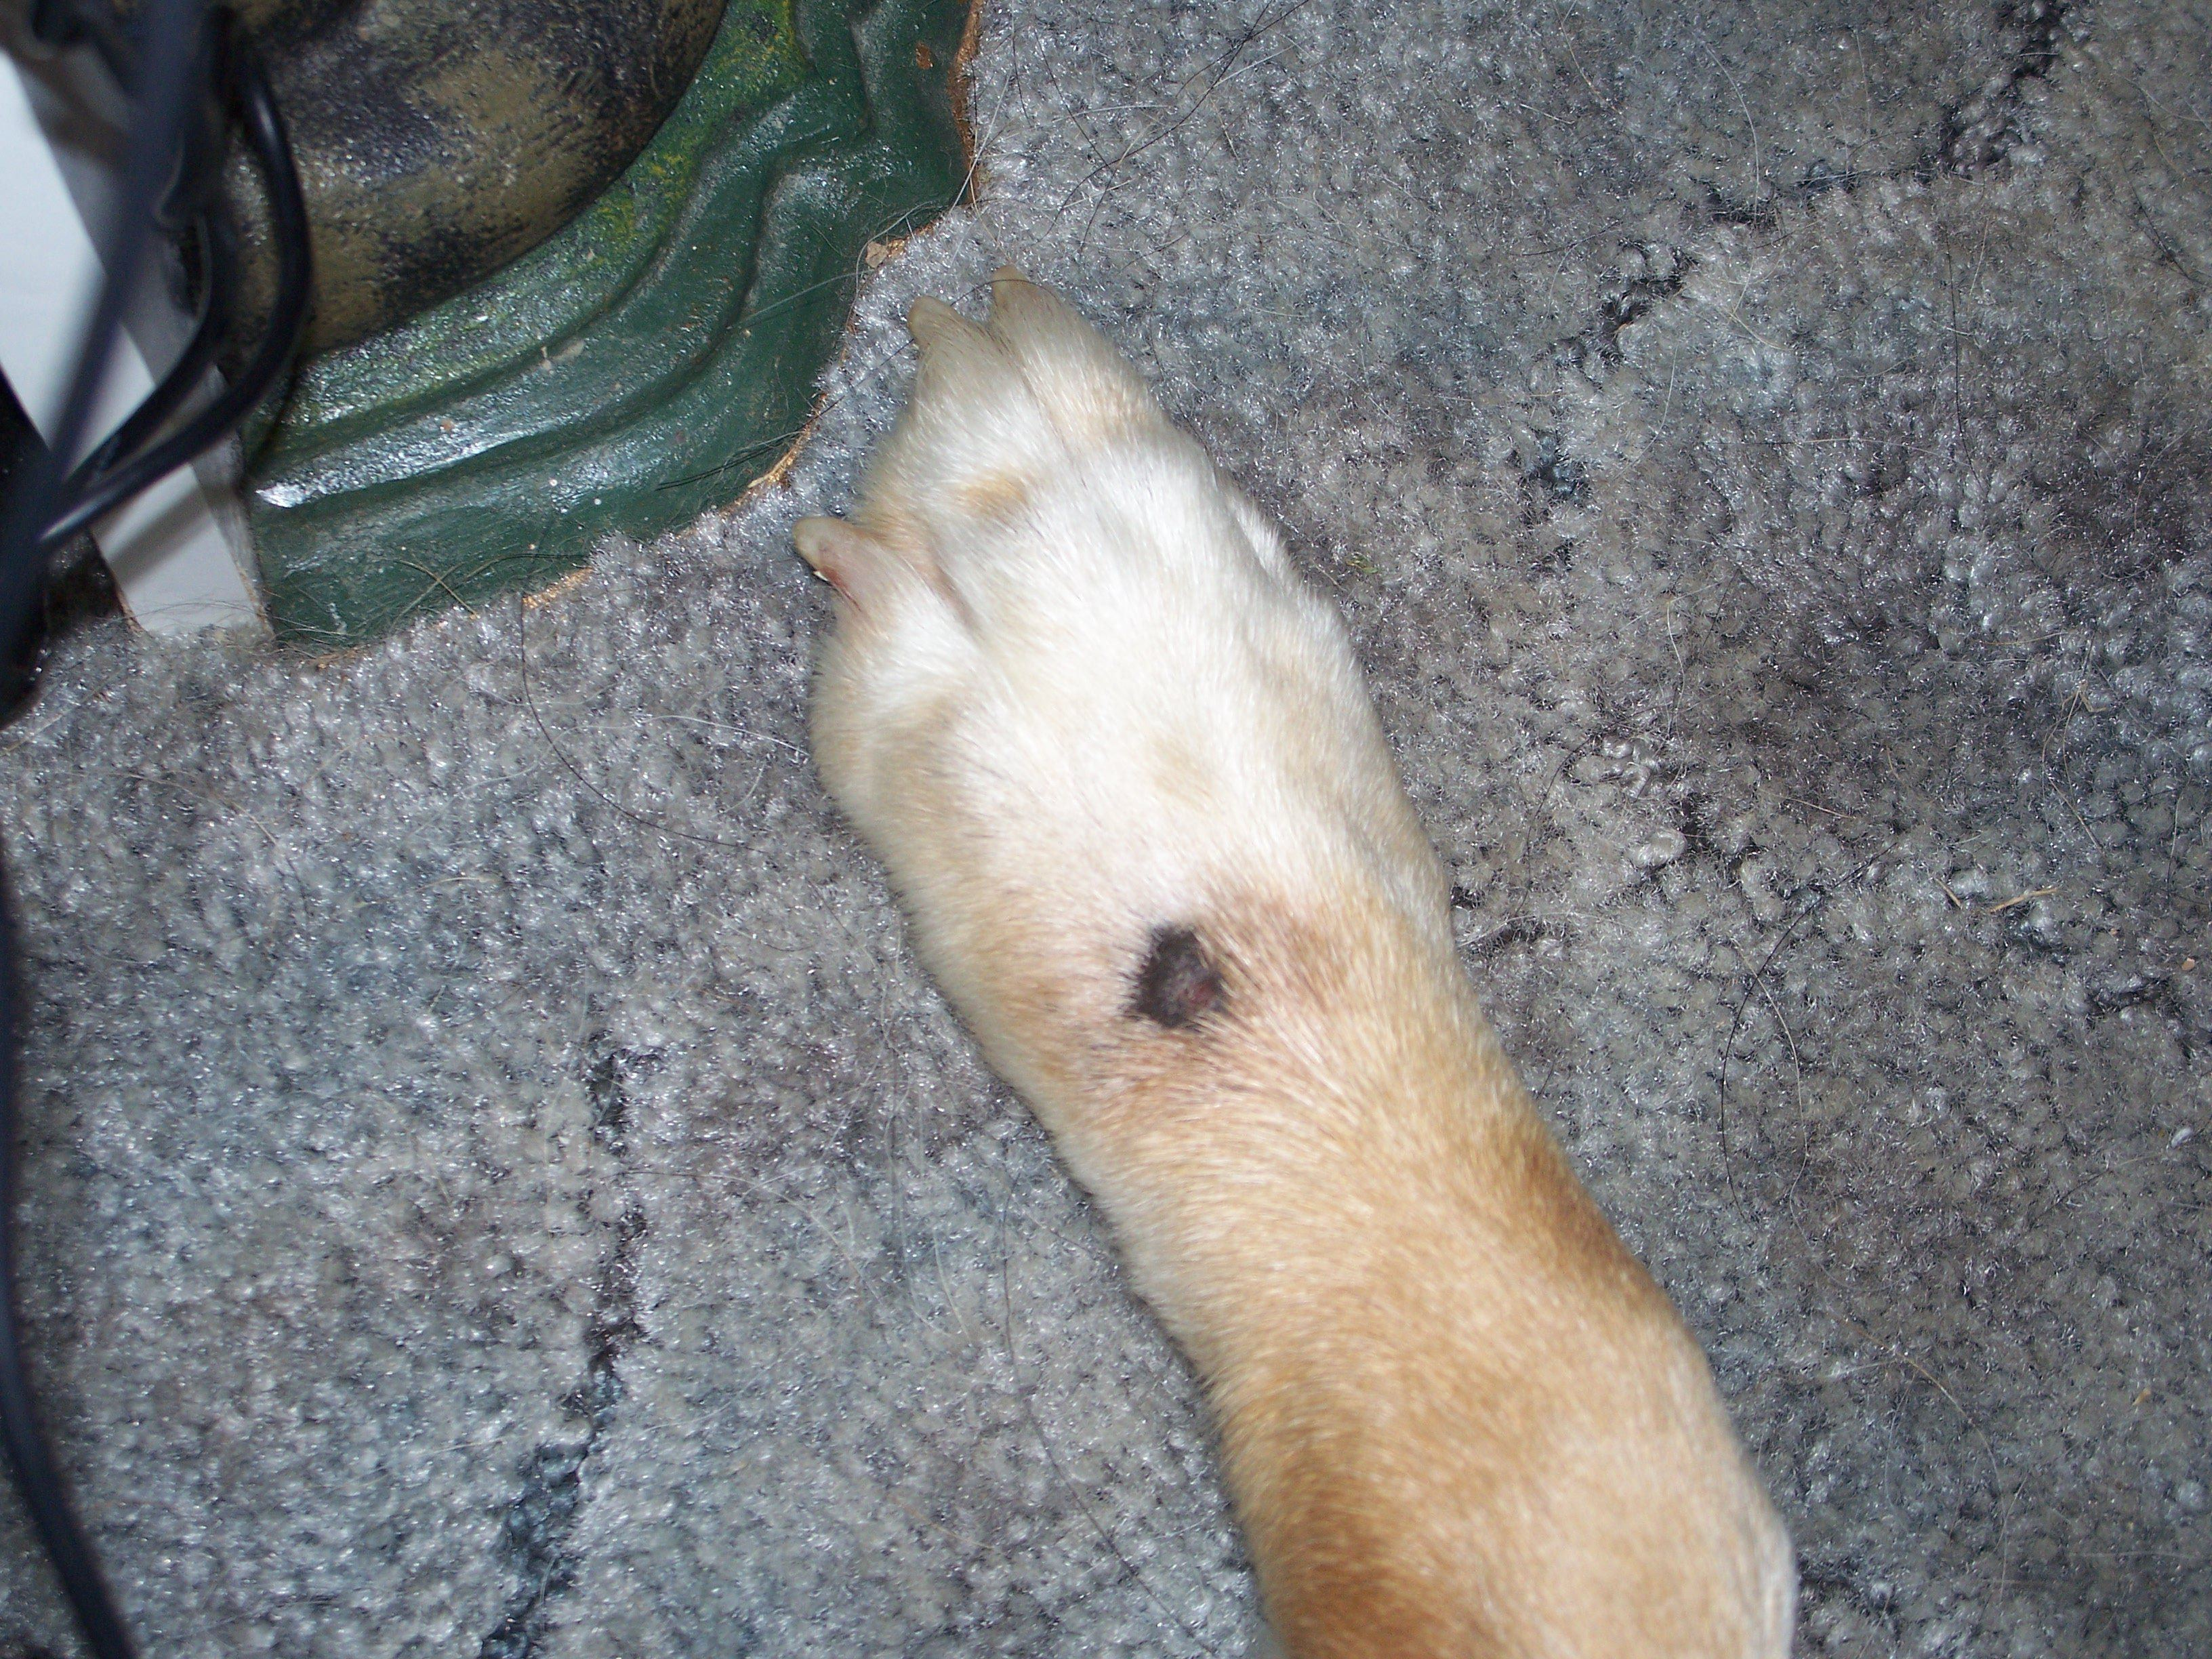 best of From granuloma injury sore lick Canine